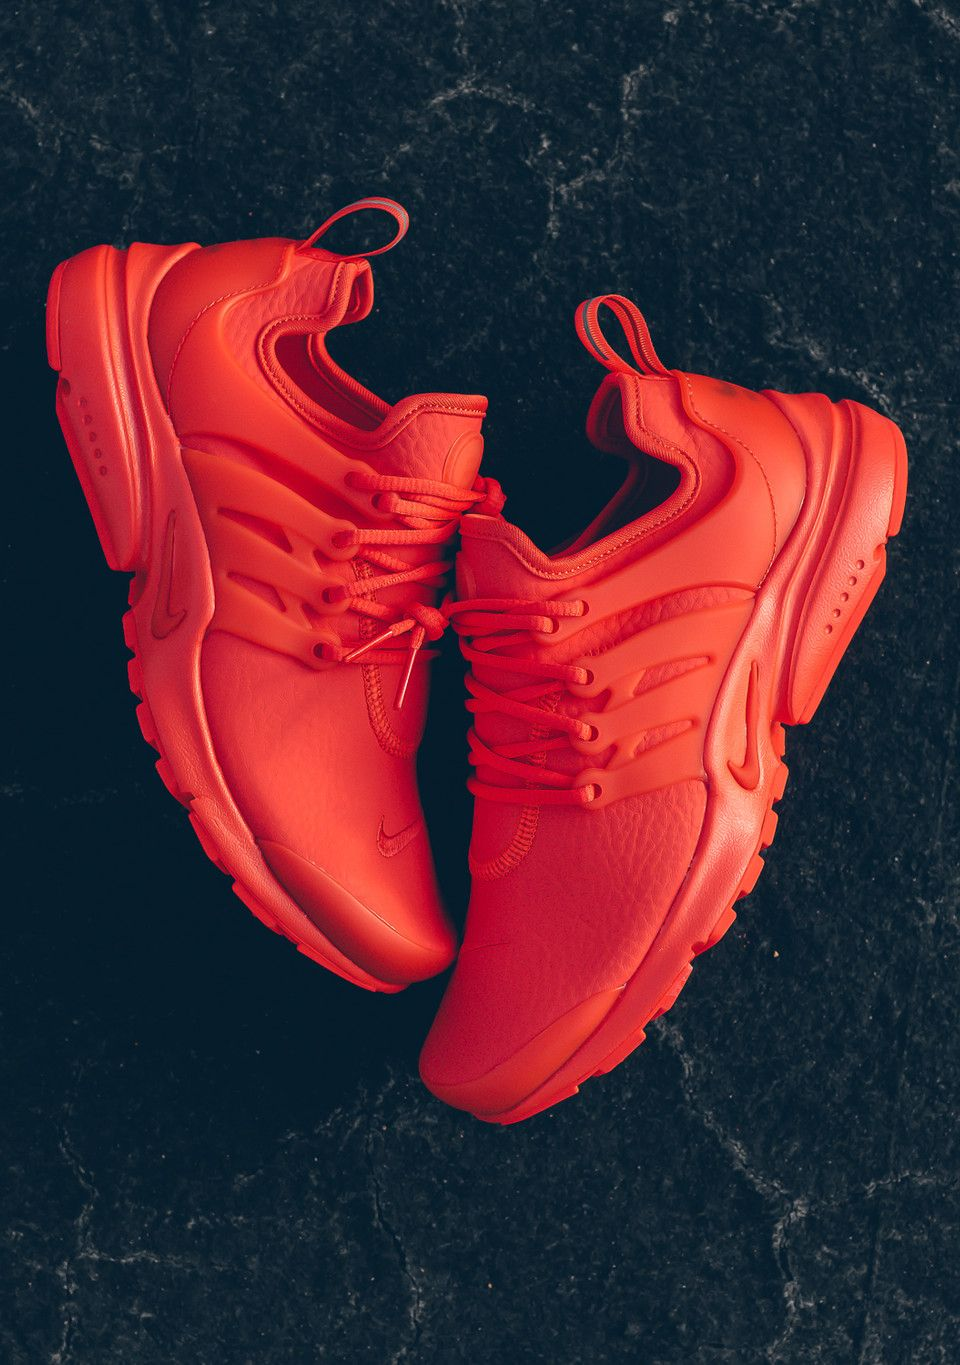 Nike Wmns Air Presto 'Max Orange' (via Kicks